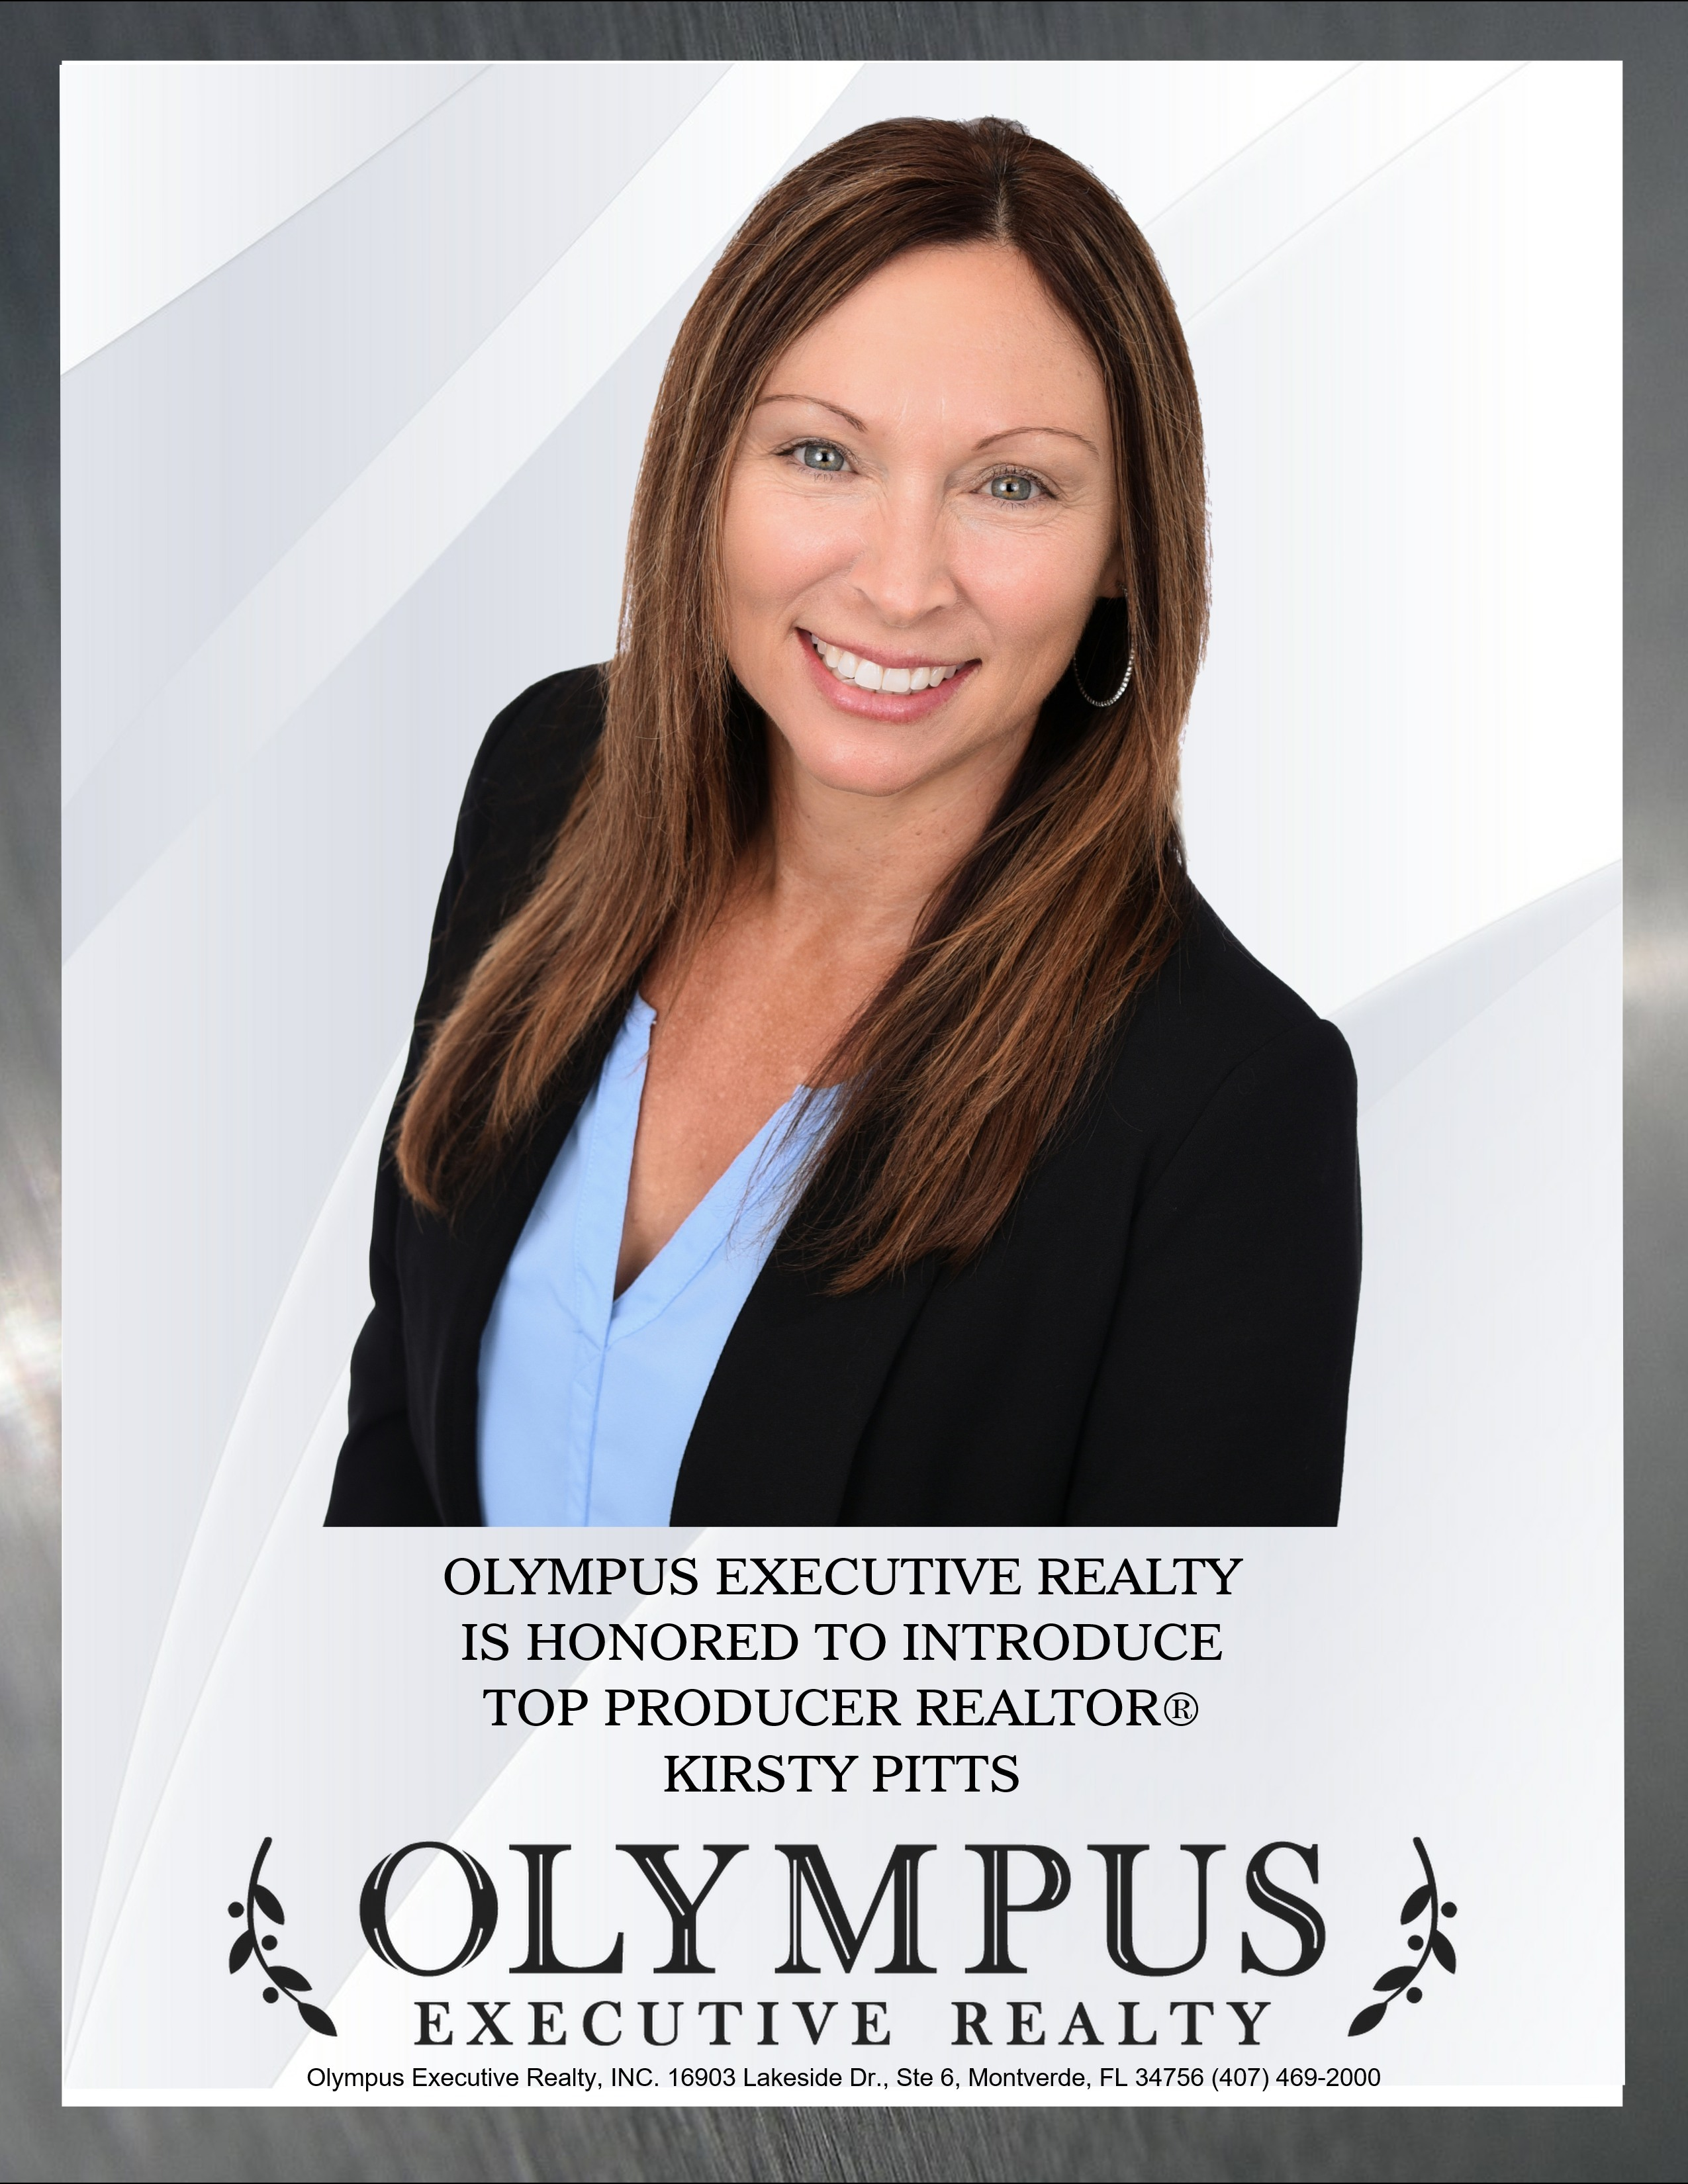 Olympus Introduces Top Producer Kirsty Pitts REALTOR